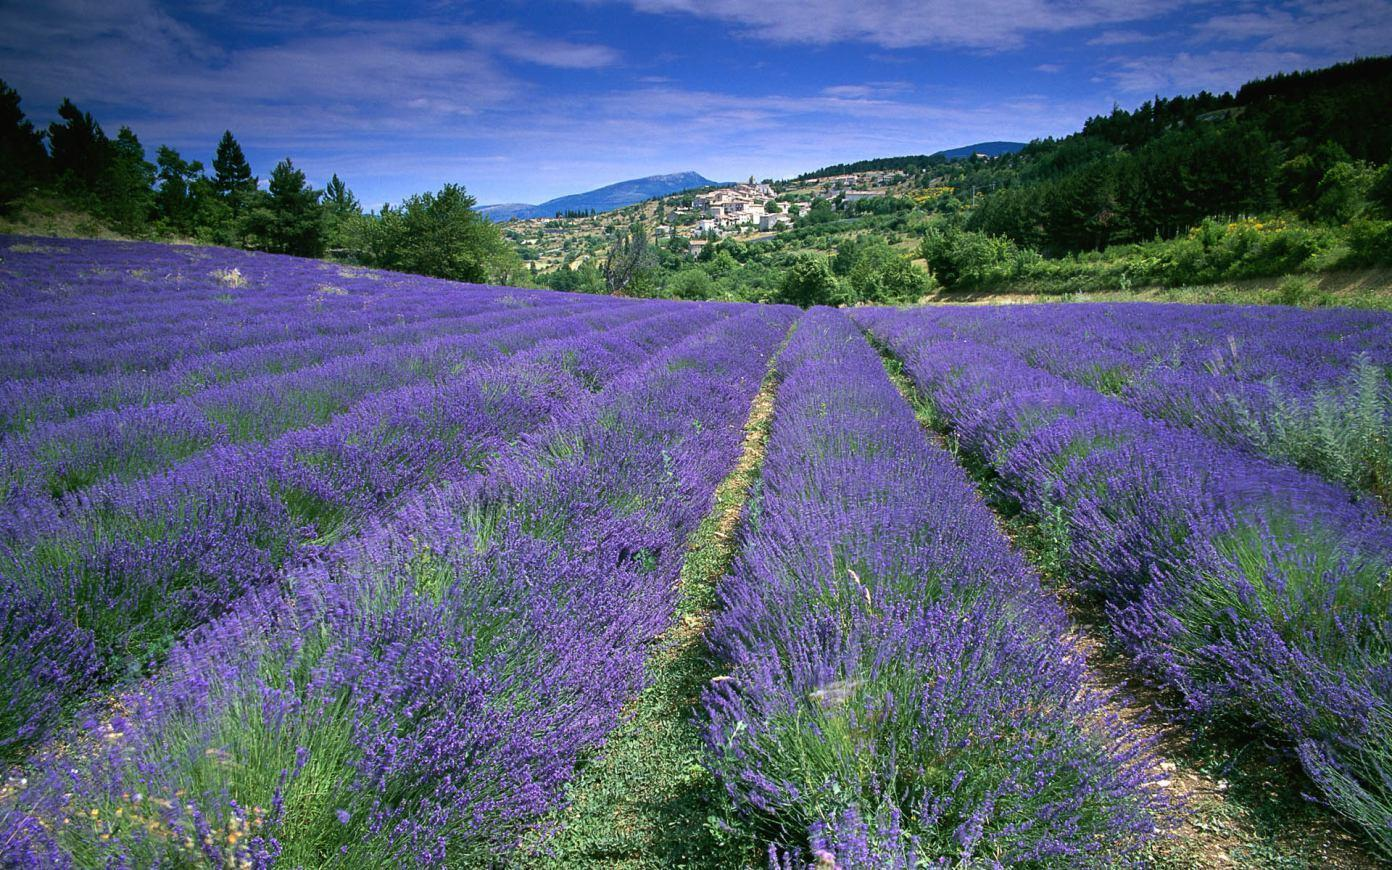 RT @We_Love_France: La Provence http://t.co/Z8QaaxE4G8